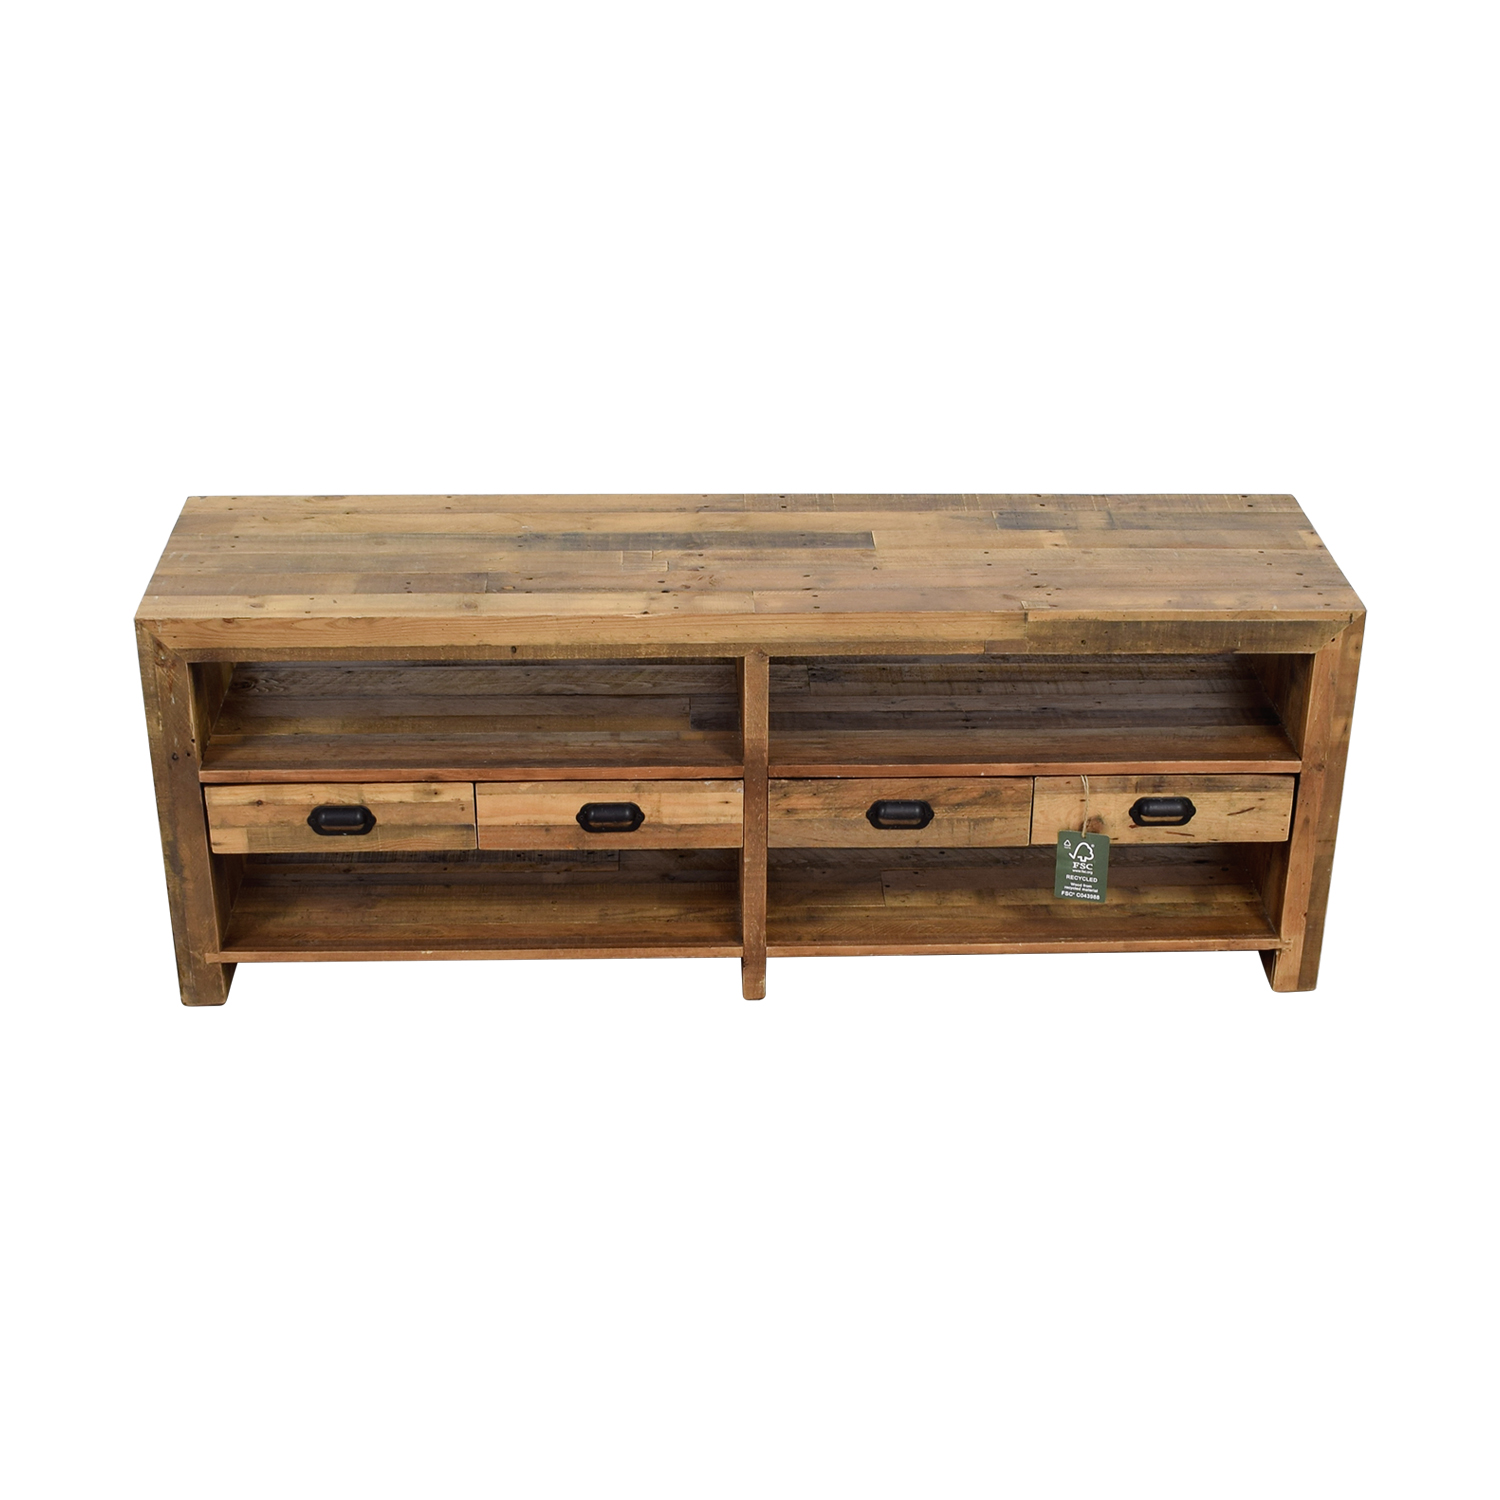 ABC Carpet & Home ABC Carpet & Home Rustic Wood TV Console nj